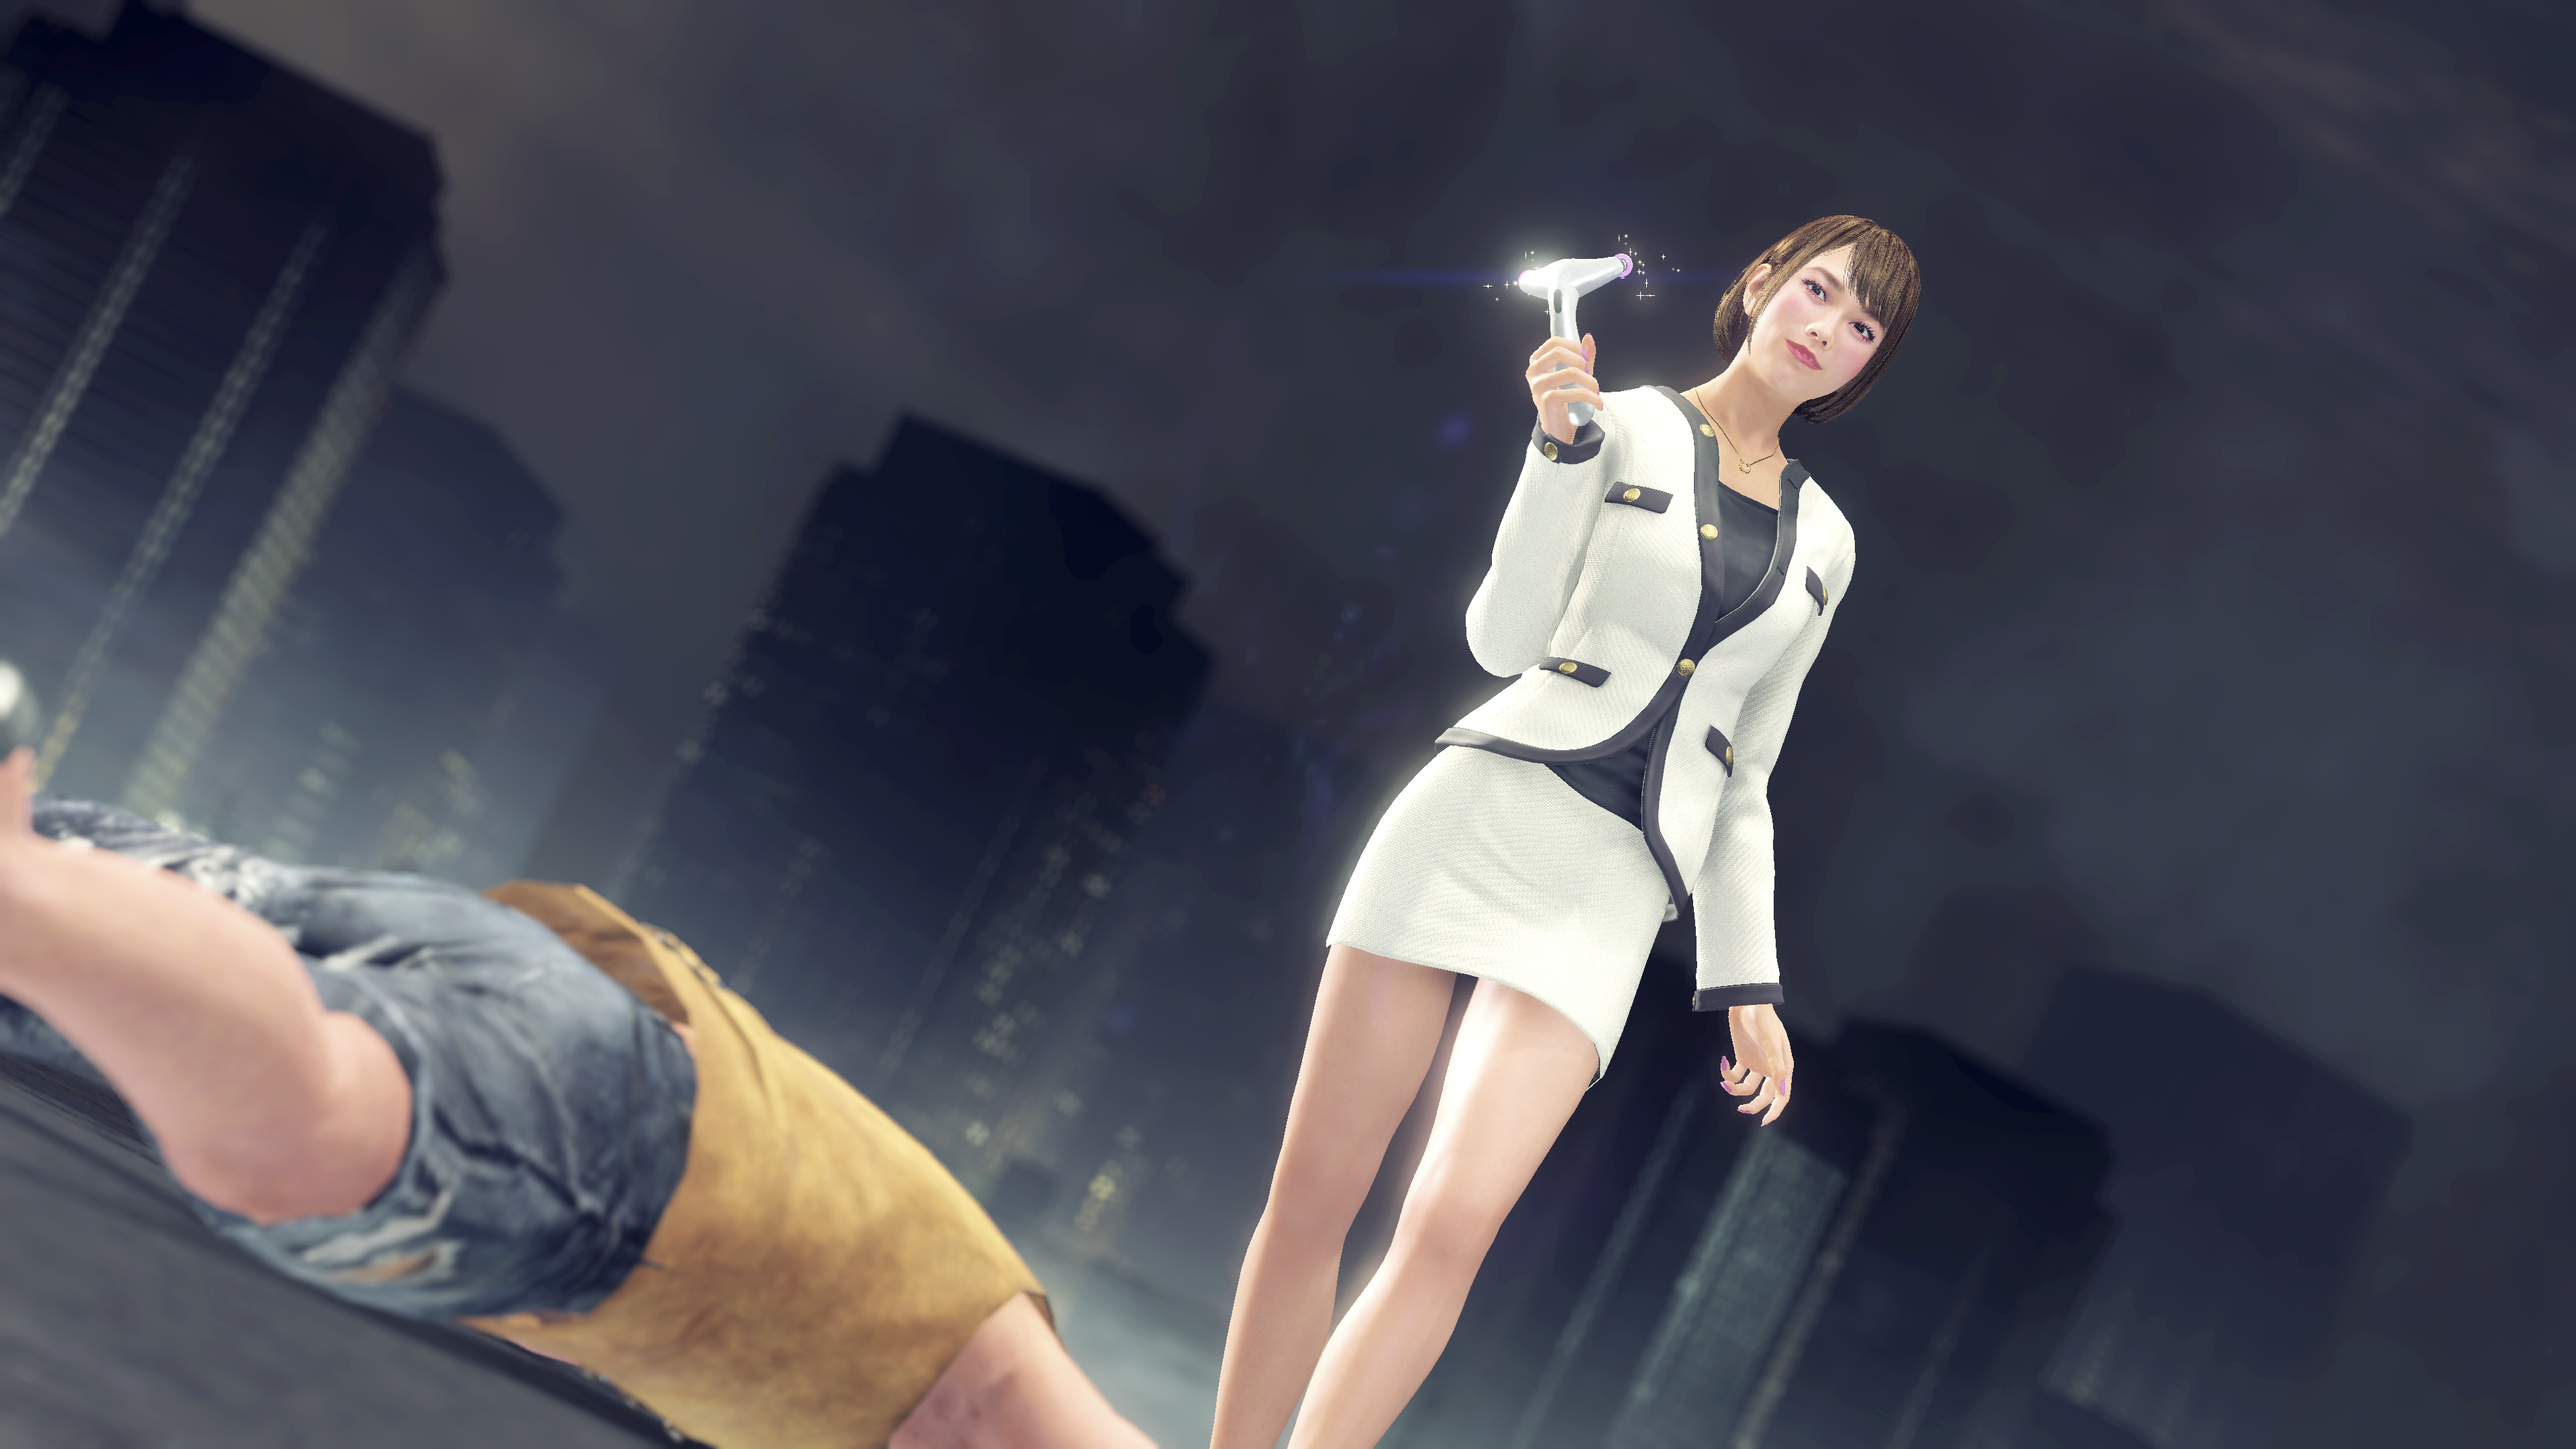 Yakuza: Like a Dragon – Saeko